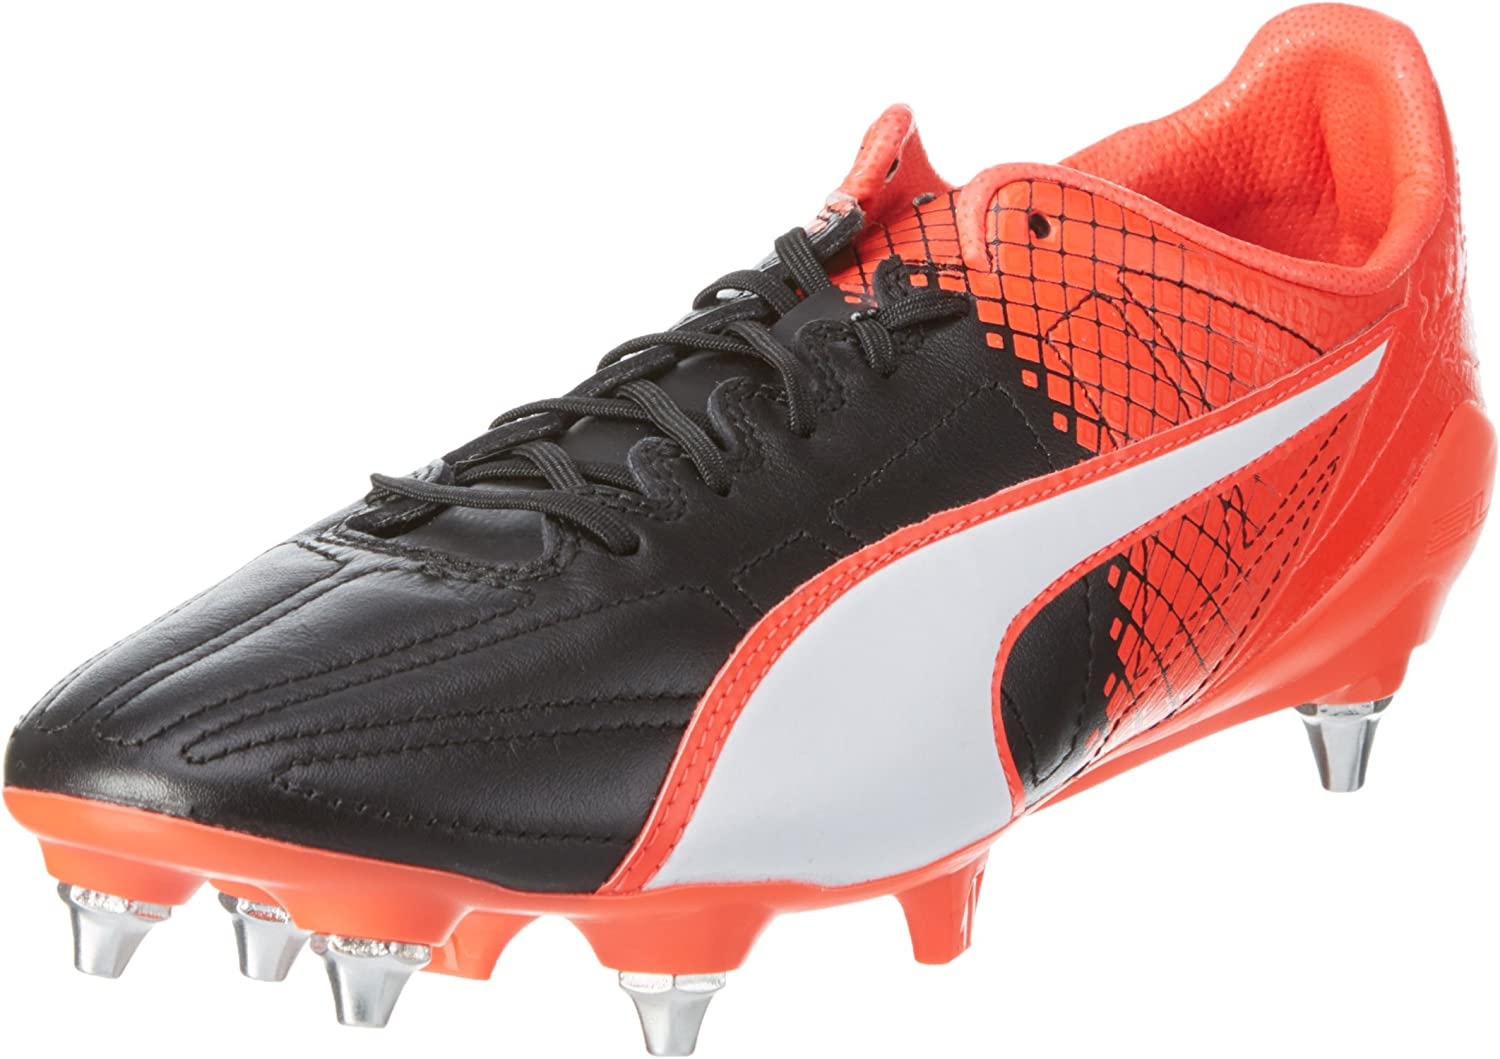 PUMA evoSPEED SL Leather Mixed SG Football Boots Size 7.5 White Red